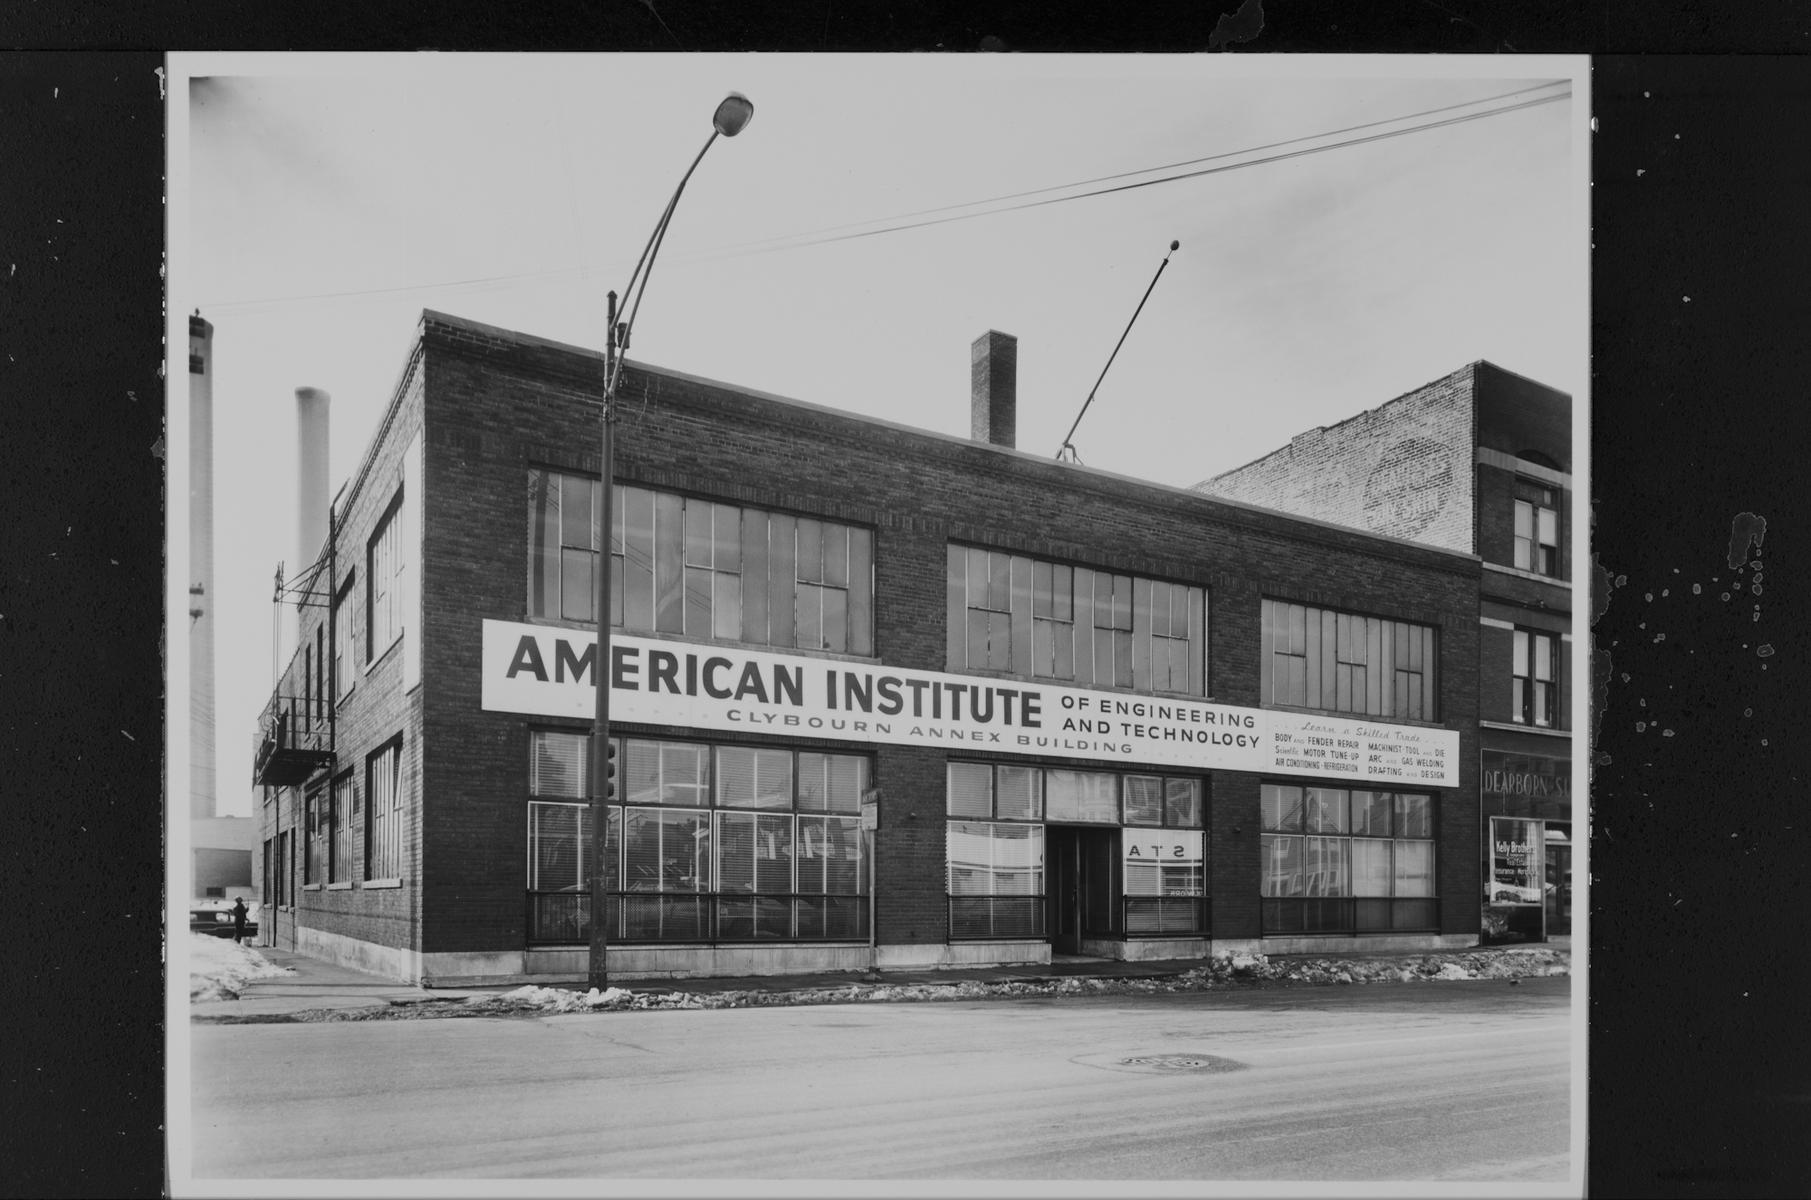 American Institute of Engineering and Technology, Clybourn Annex Building, 2340 North Clybourn Avenue